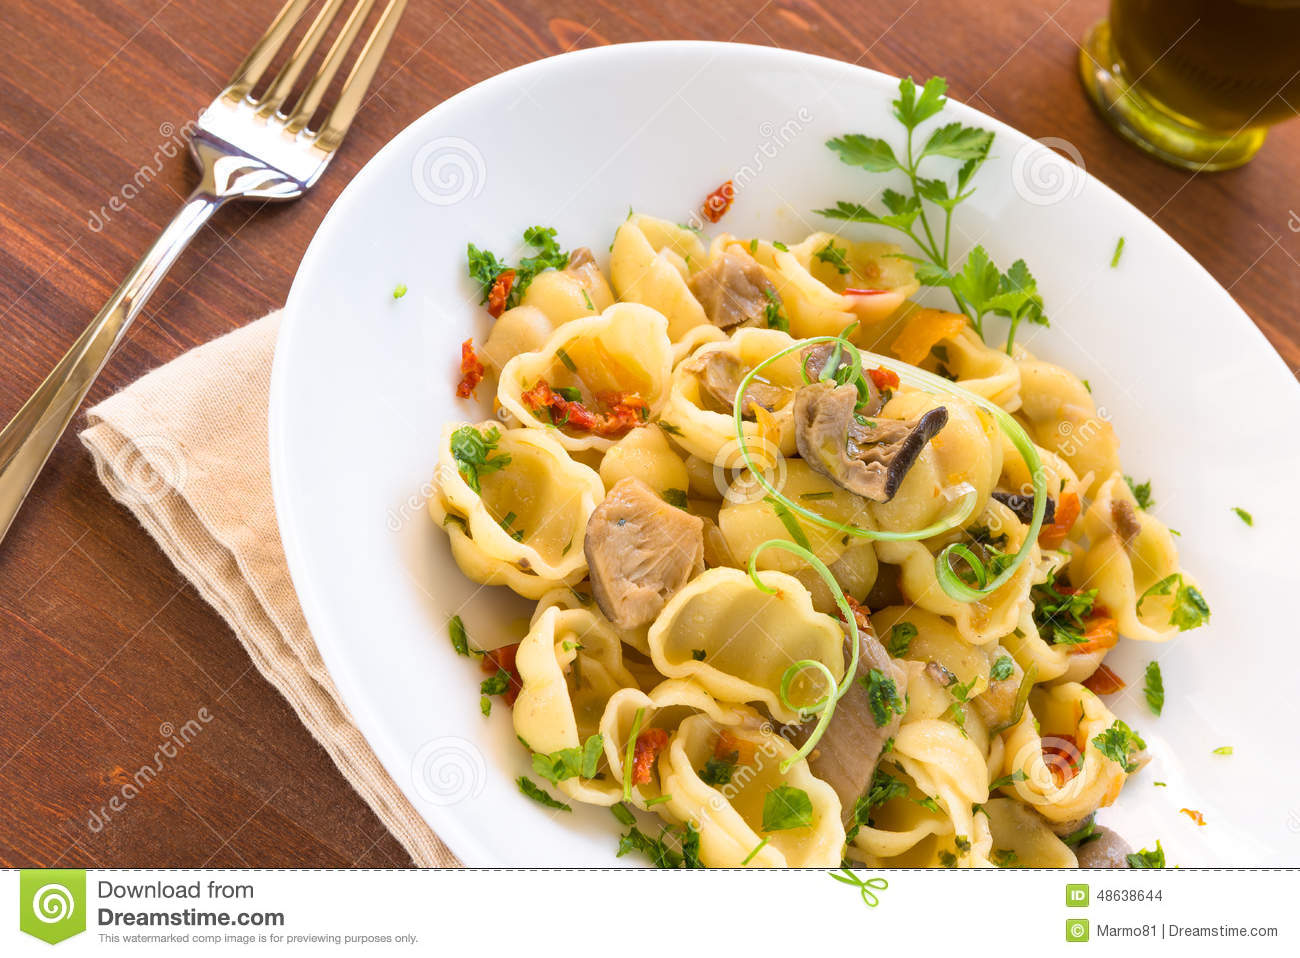 gnocchi avec des champignons cuisine italienne photo stock image du chef recette 48638644. Black Bedroom Furniture Sets. Home Design Ideas